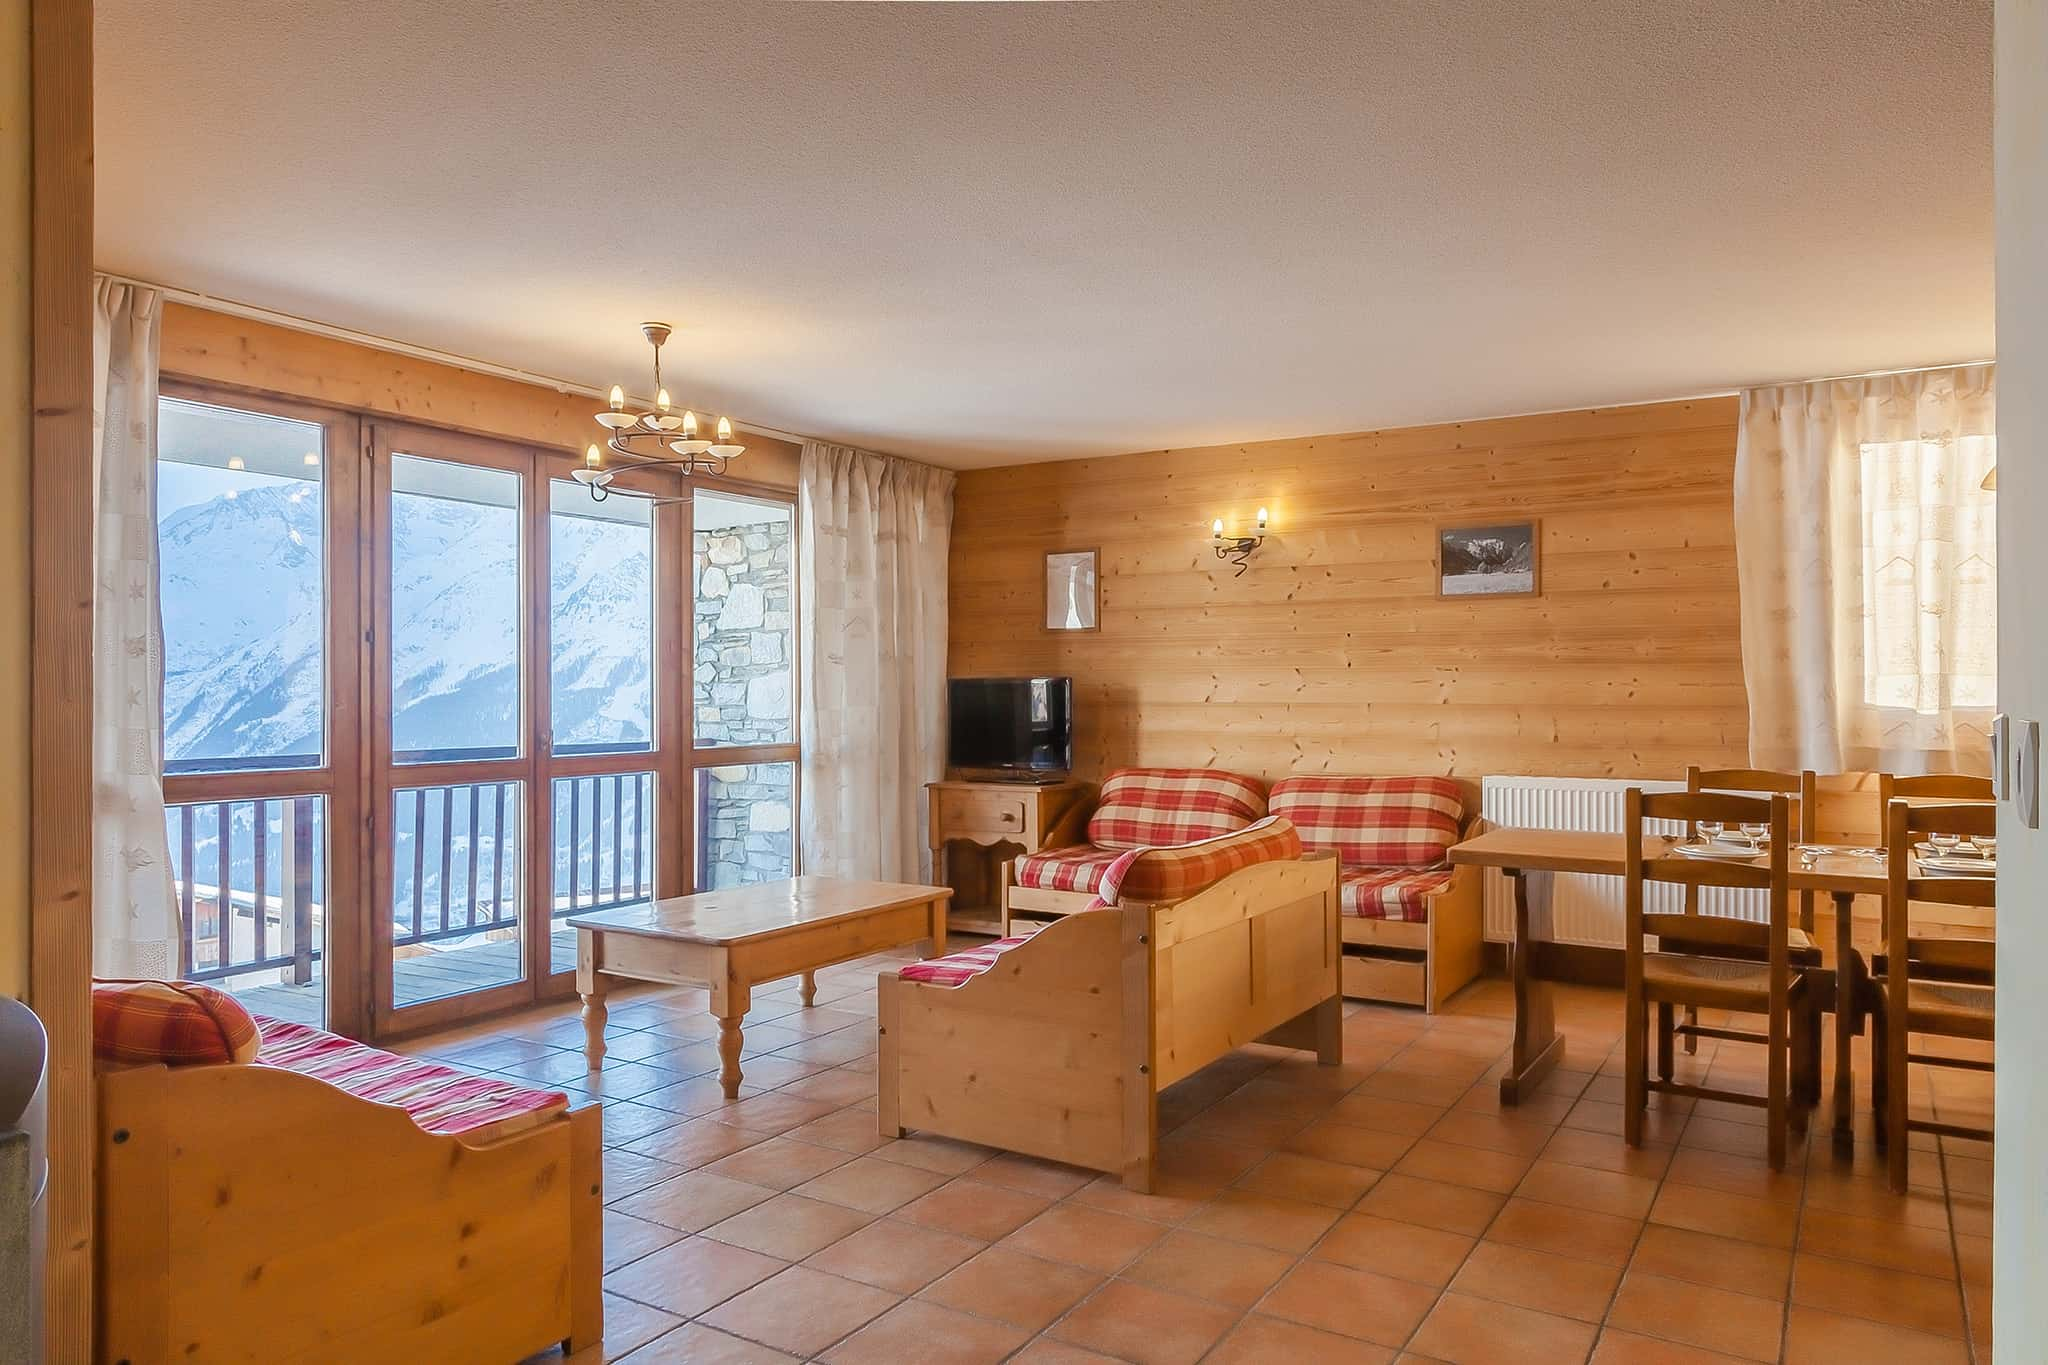 1-BLR-Types-Appartement-8-10pers-sejour